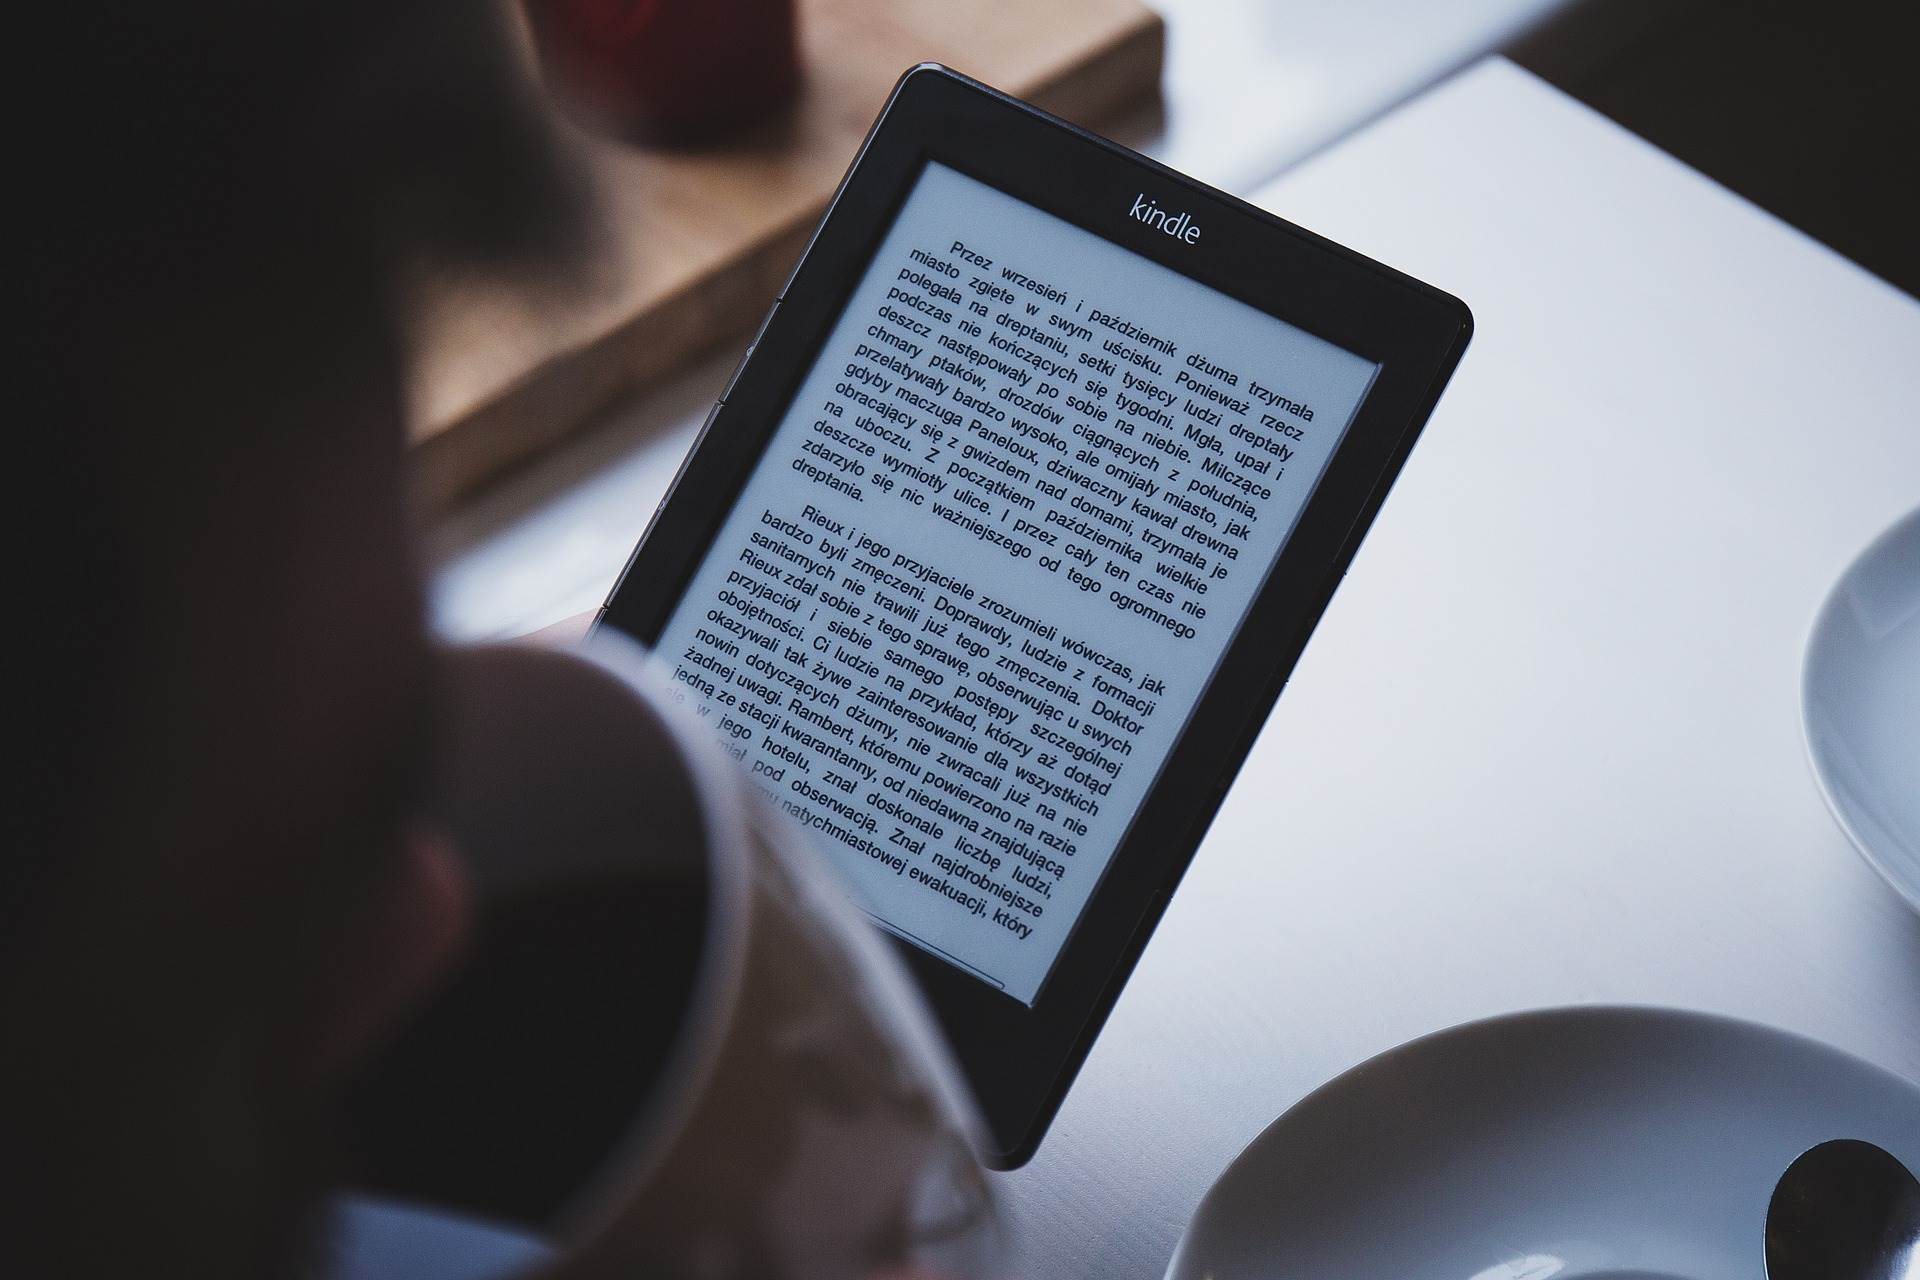 10 advantages of an ebook instead of a paper book